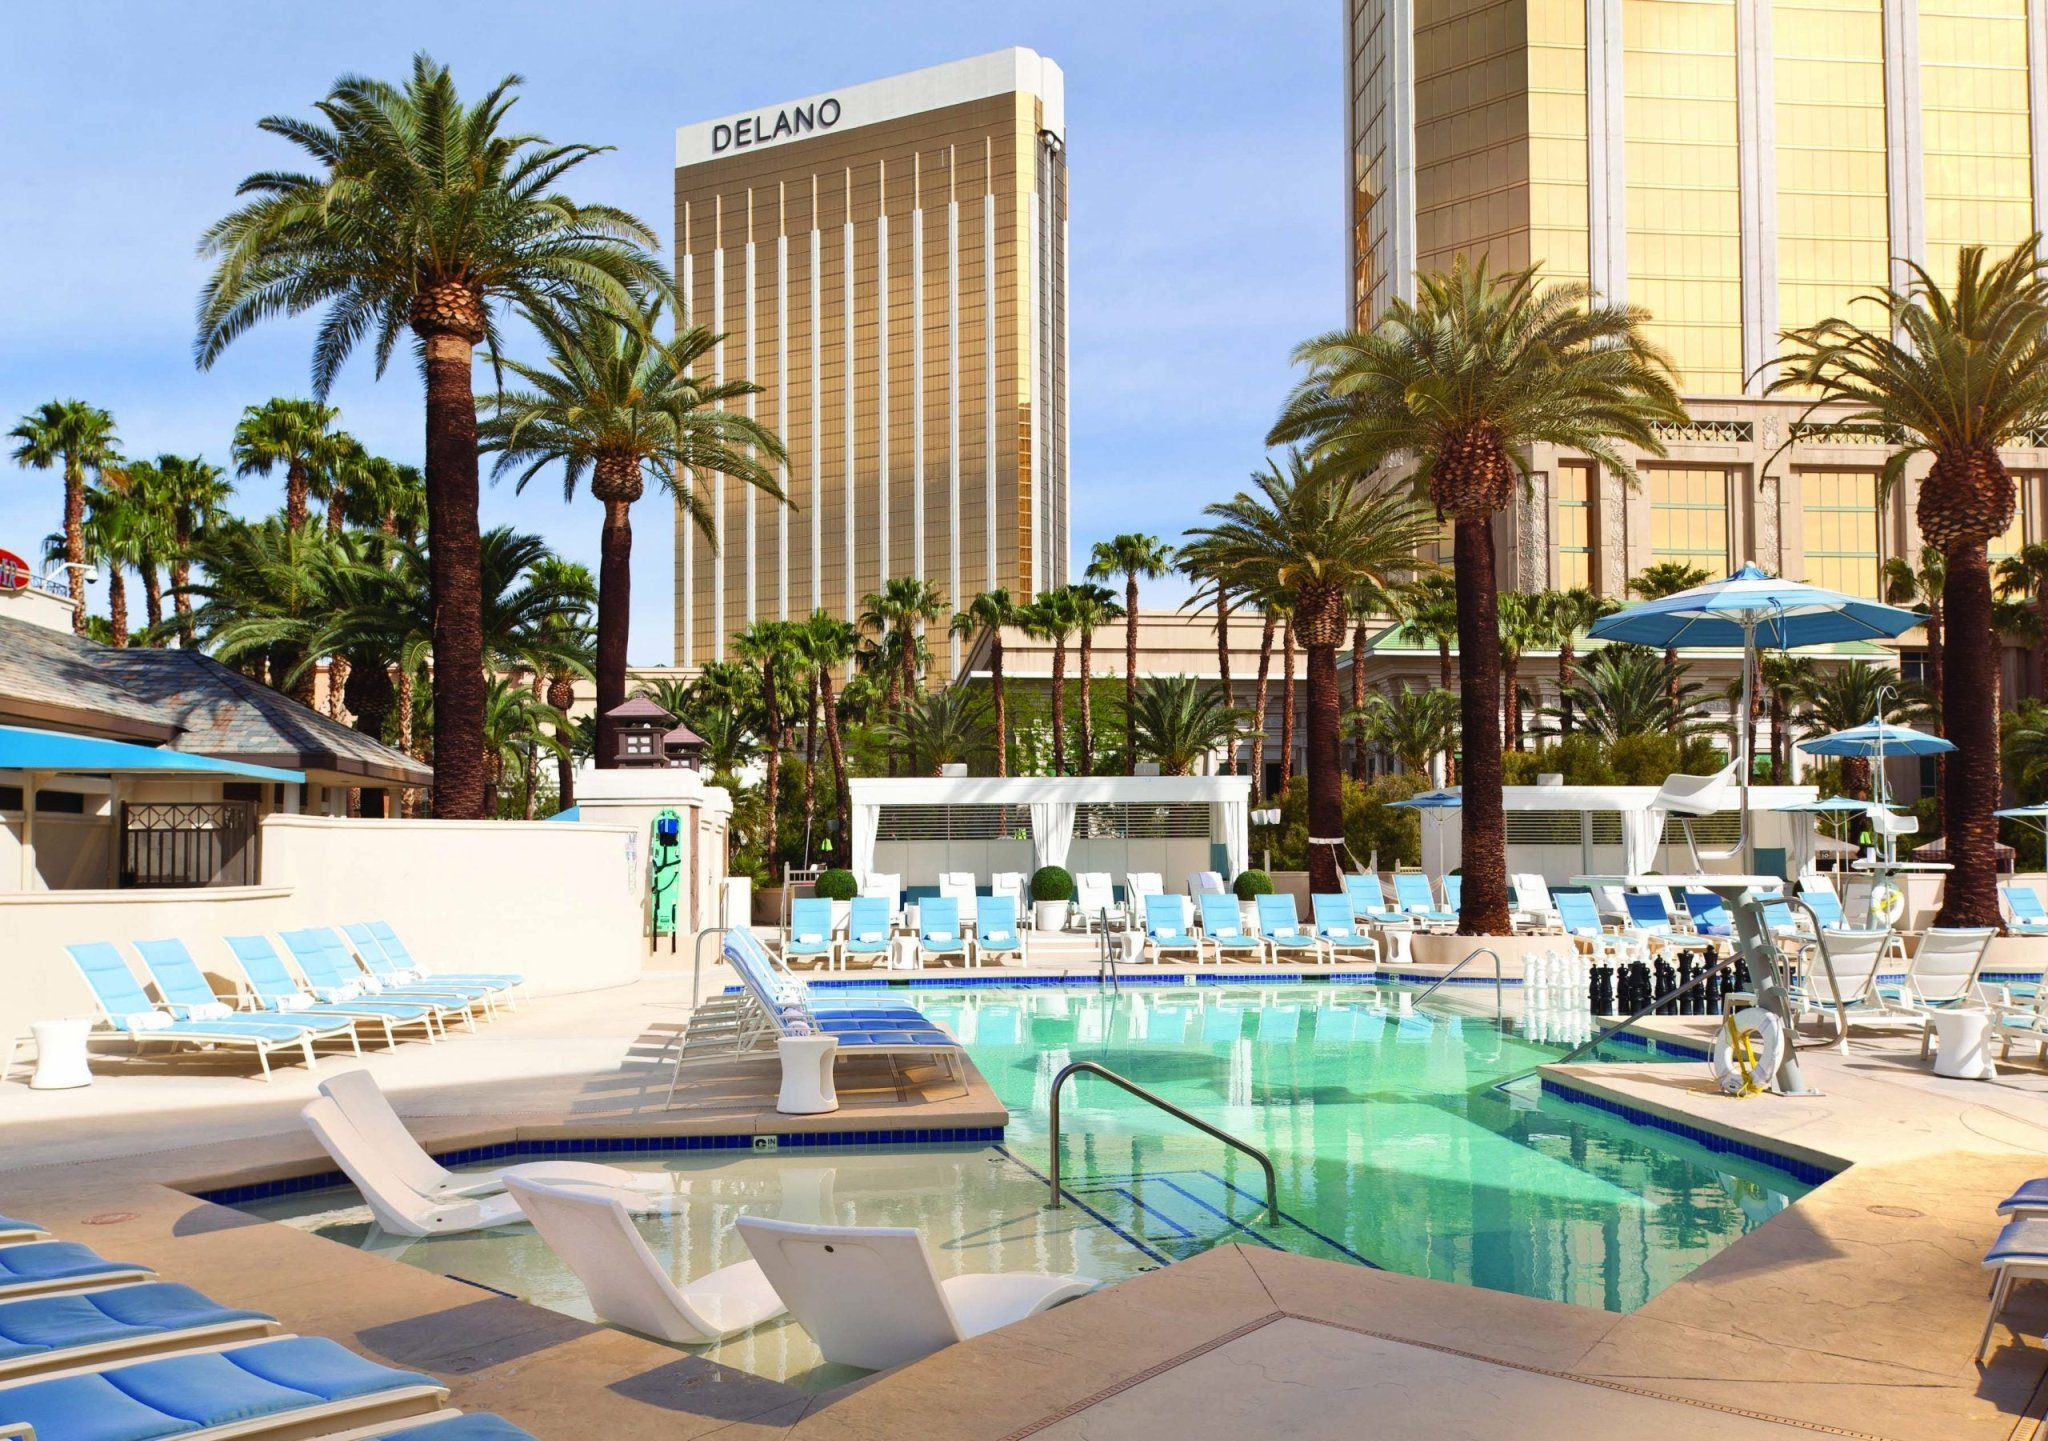 From Hawaii To Vegas: A Closer Look At Some of Our Favorite U.S. Hotels